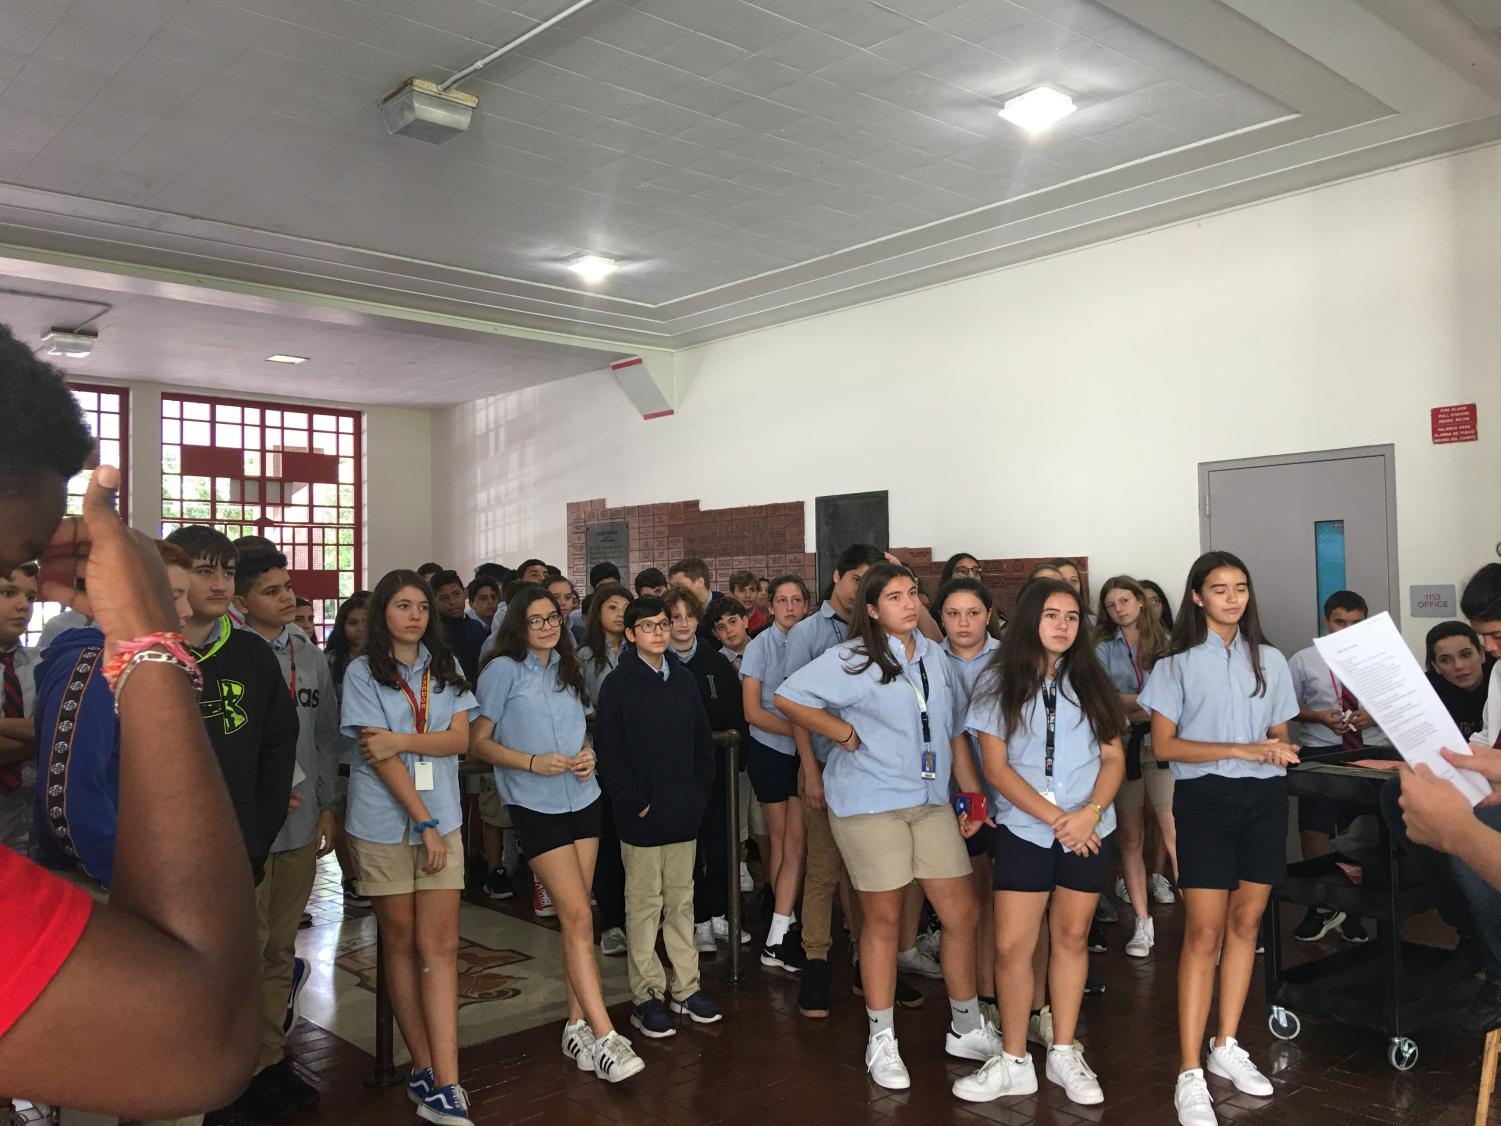 Some future Cavaliers from Coral Gables Preparatory Academy had taken a tour around our campus, learning of what Gables is made of.